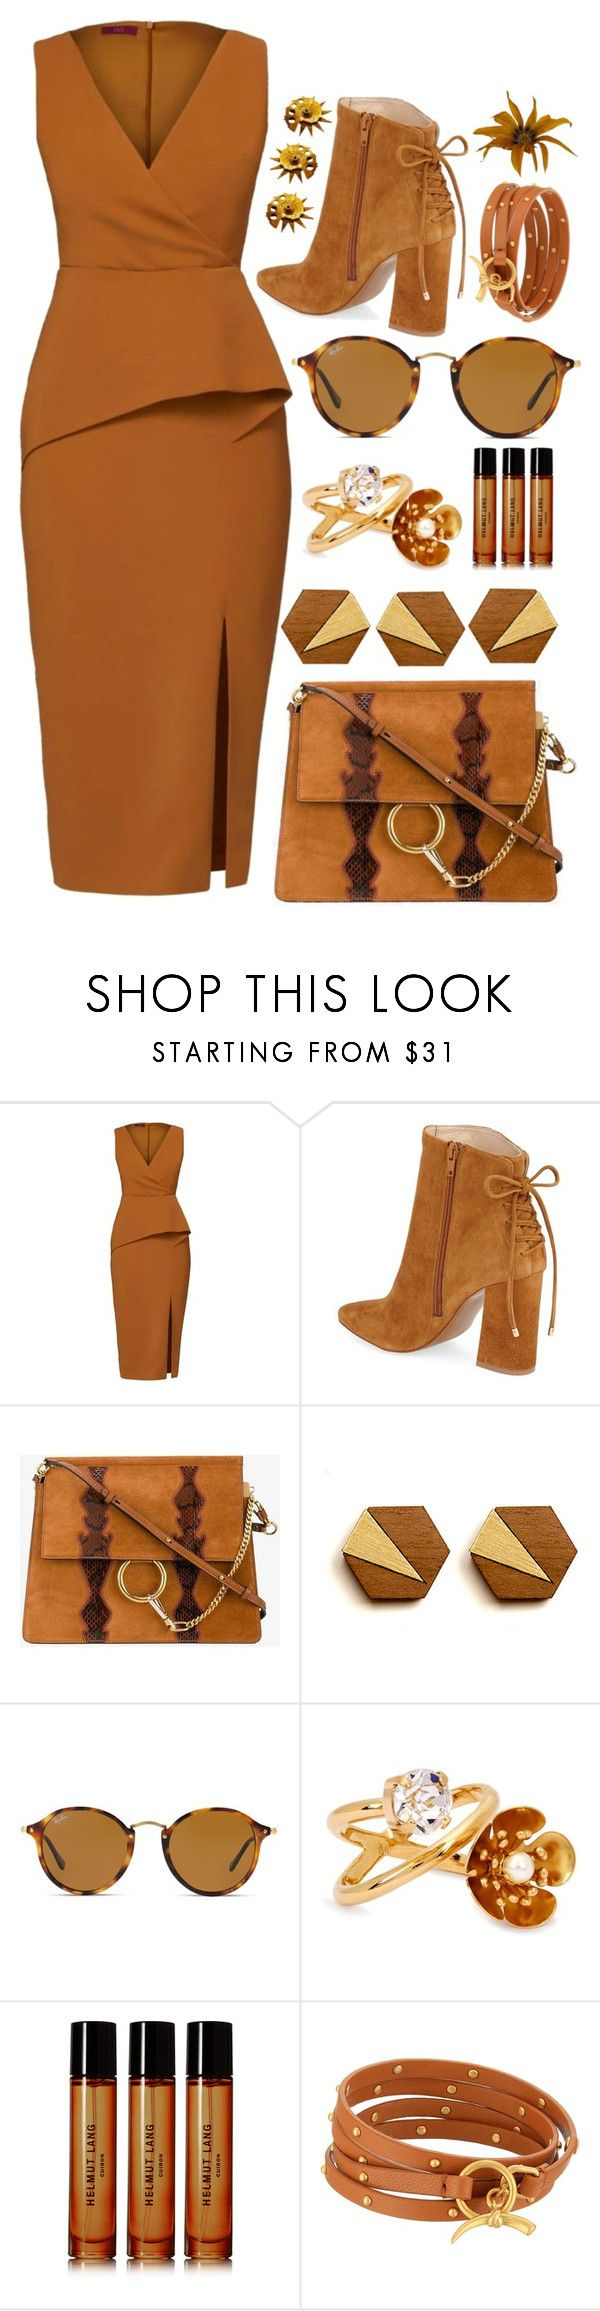 """Untitled #1935"" by sunnydays4everkh ❤ liked on Polyvore featuring WtR, Kristin Cavallari, Chloé, Ray-Ban, CA&LOU, Helmut Lang and Tory Burch"